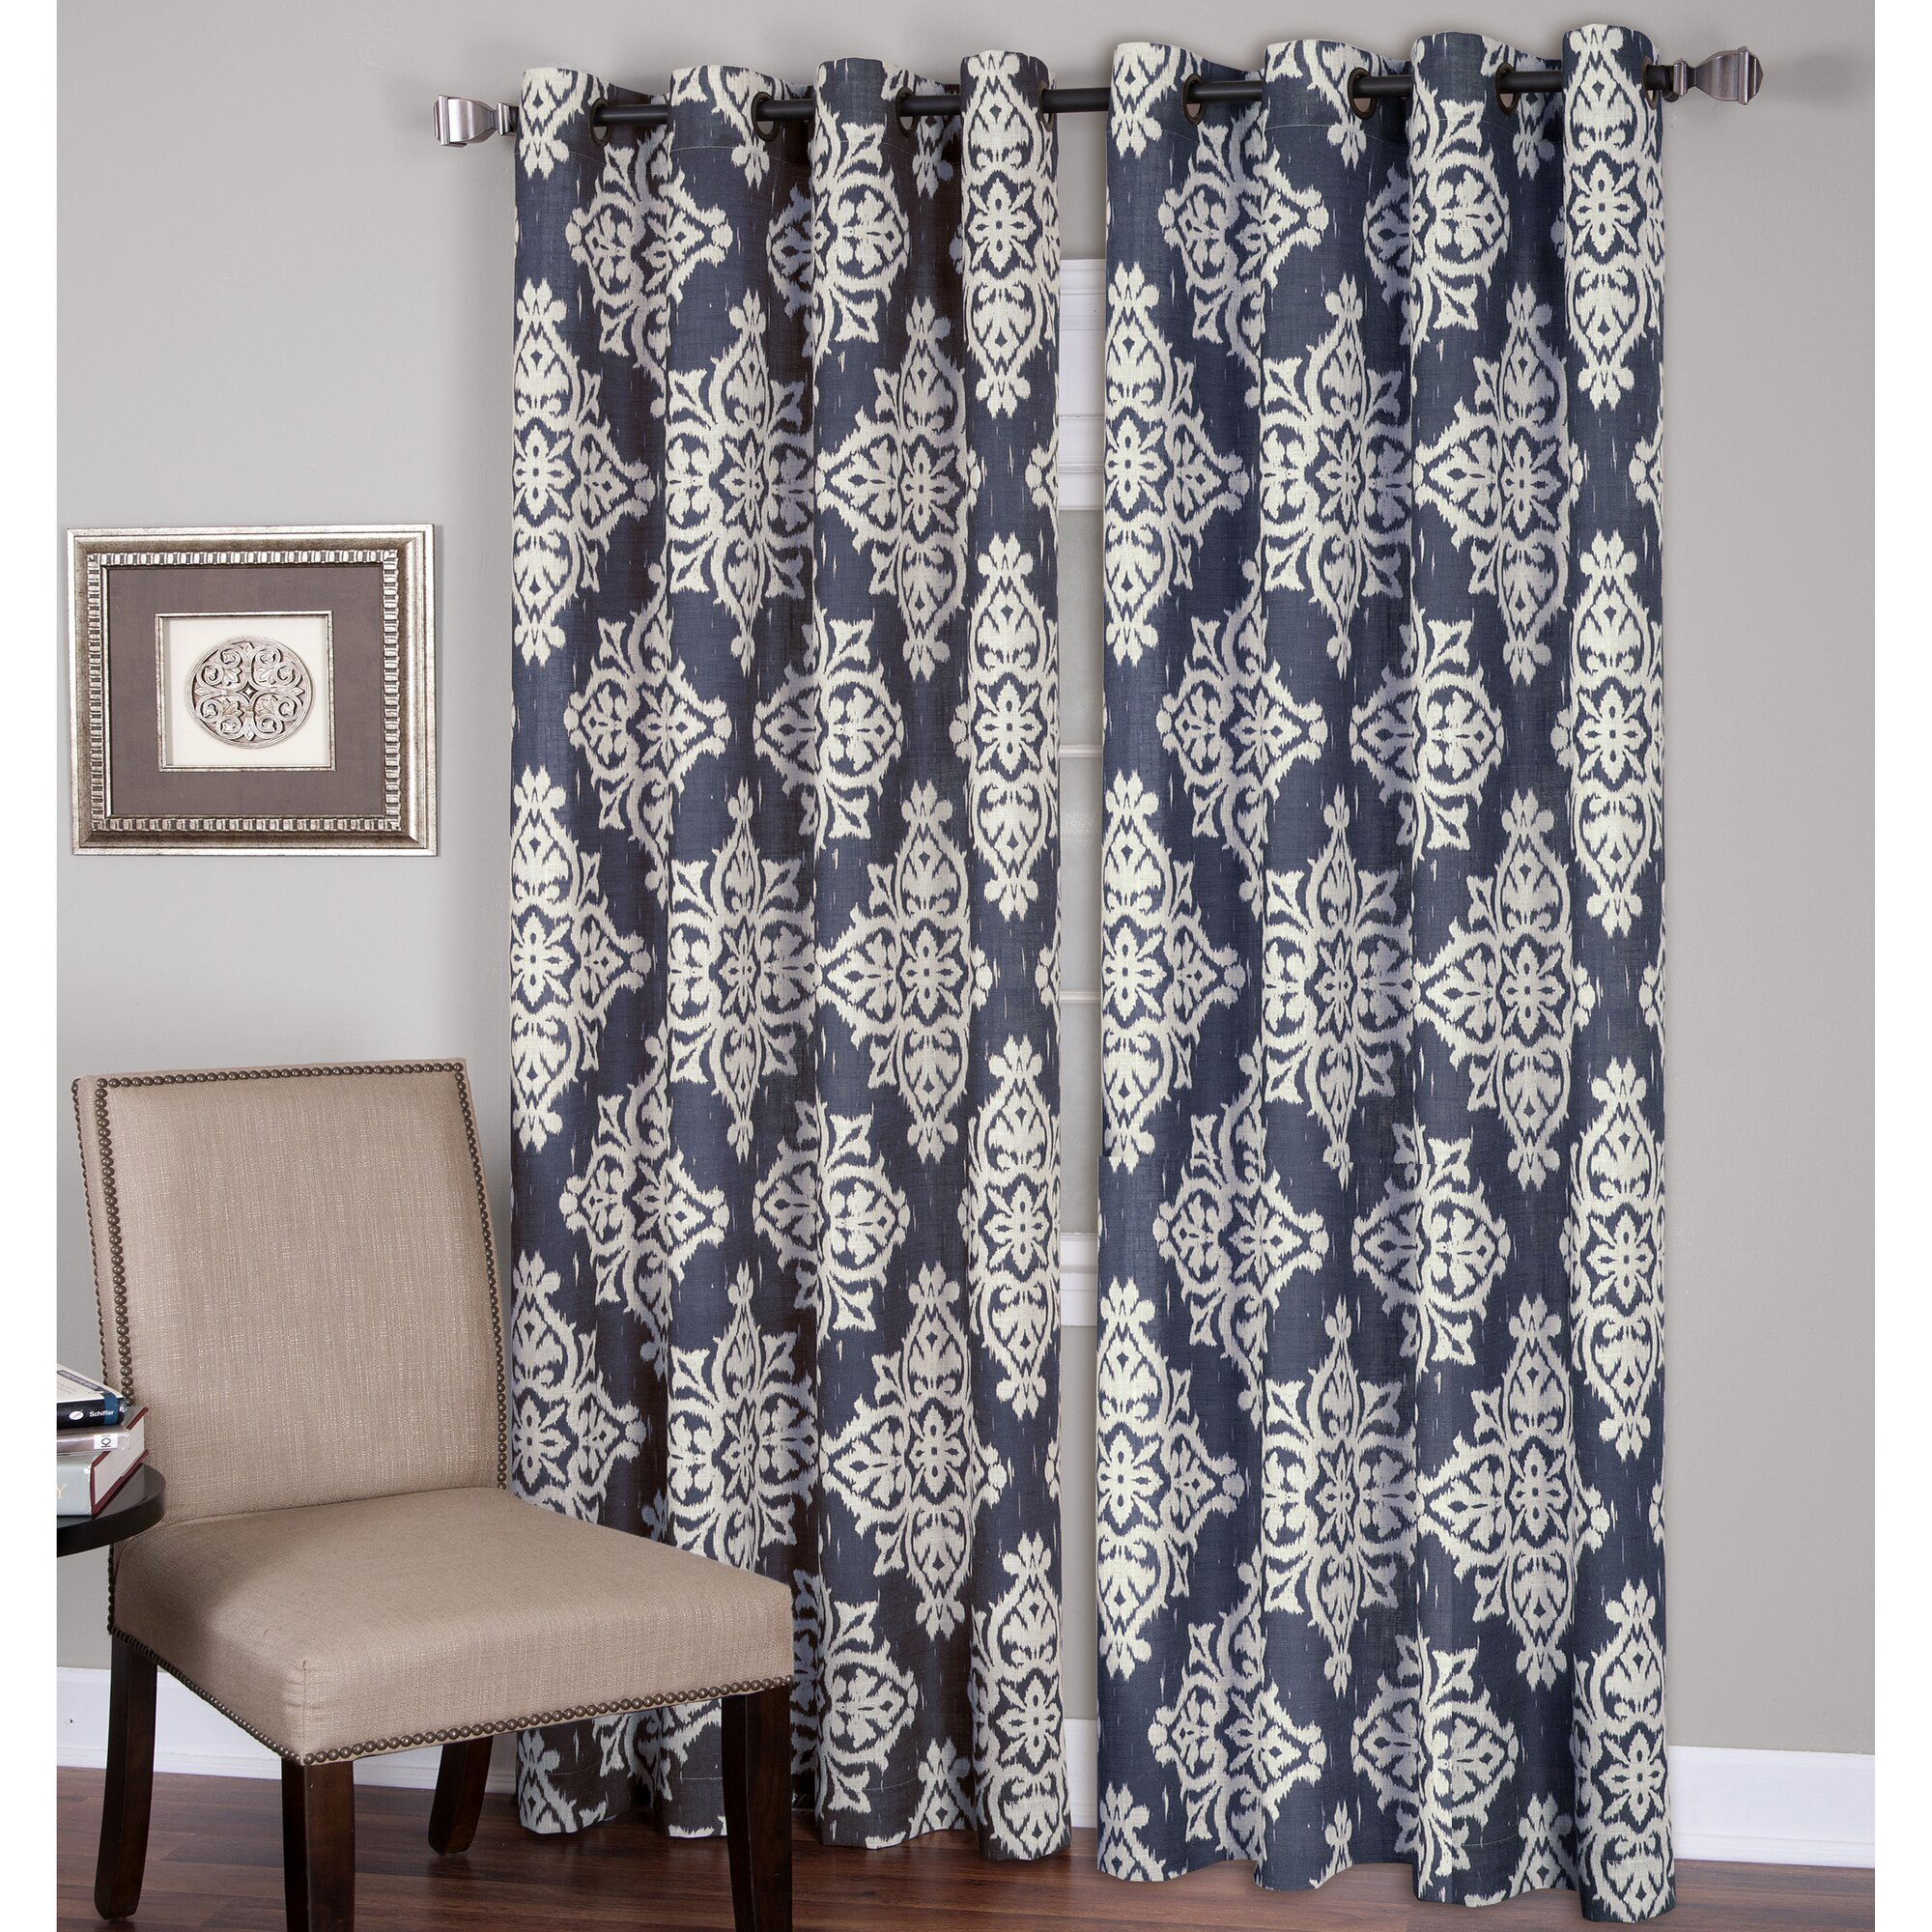 All In One Curtain Sets